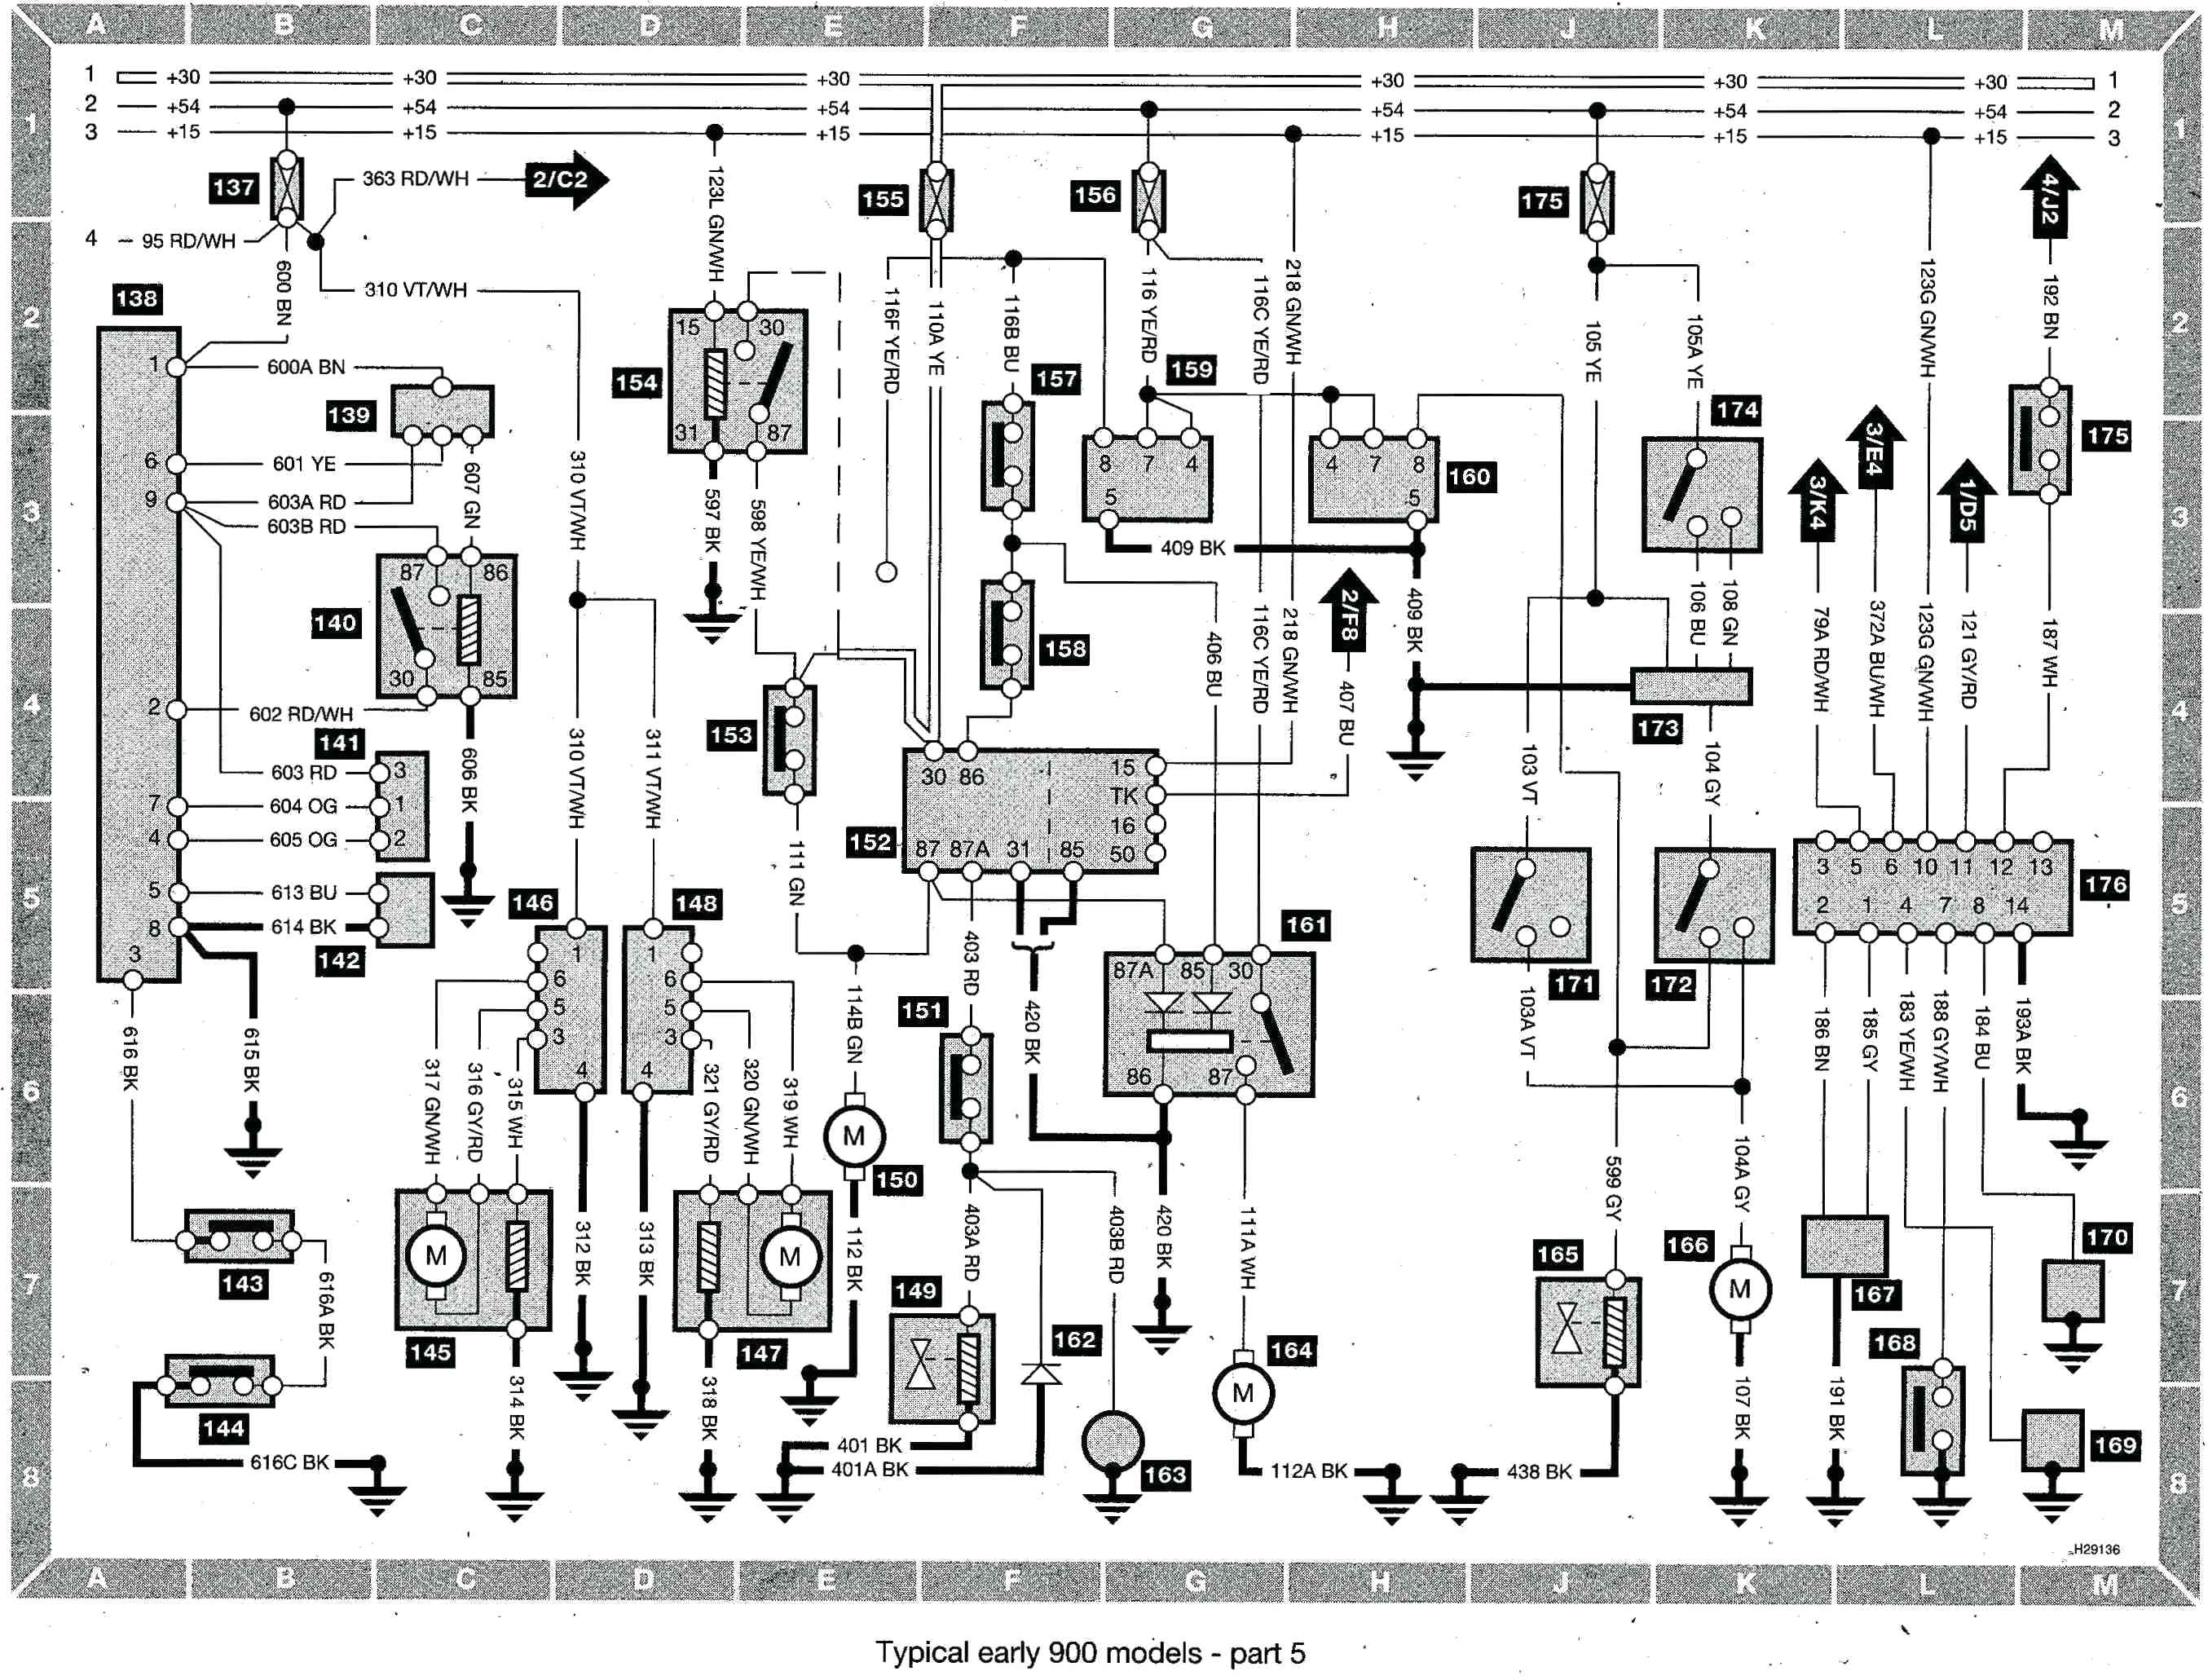 Wiring Diagram For Saab 9 3 Ignition Electrical Schematics 2006 Fuse Box 08 Diagrams U2022